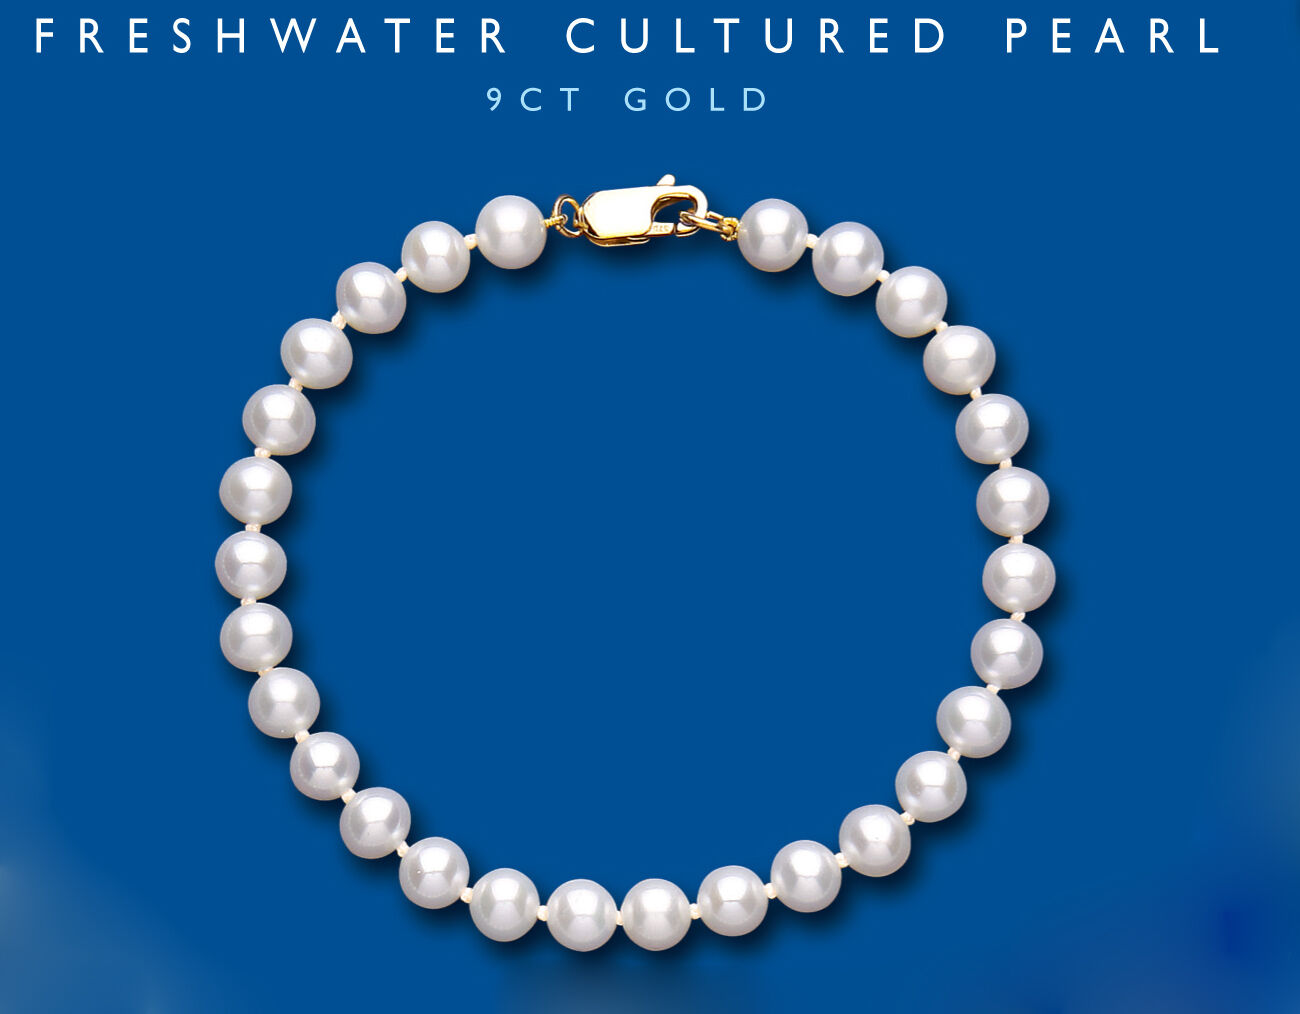 Freshwater Cultured Pearl Bracelet 9 Carat Yellow gold Fittings Hallmarked